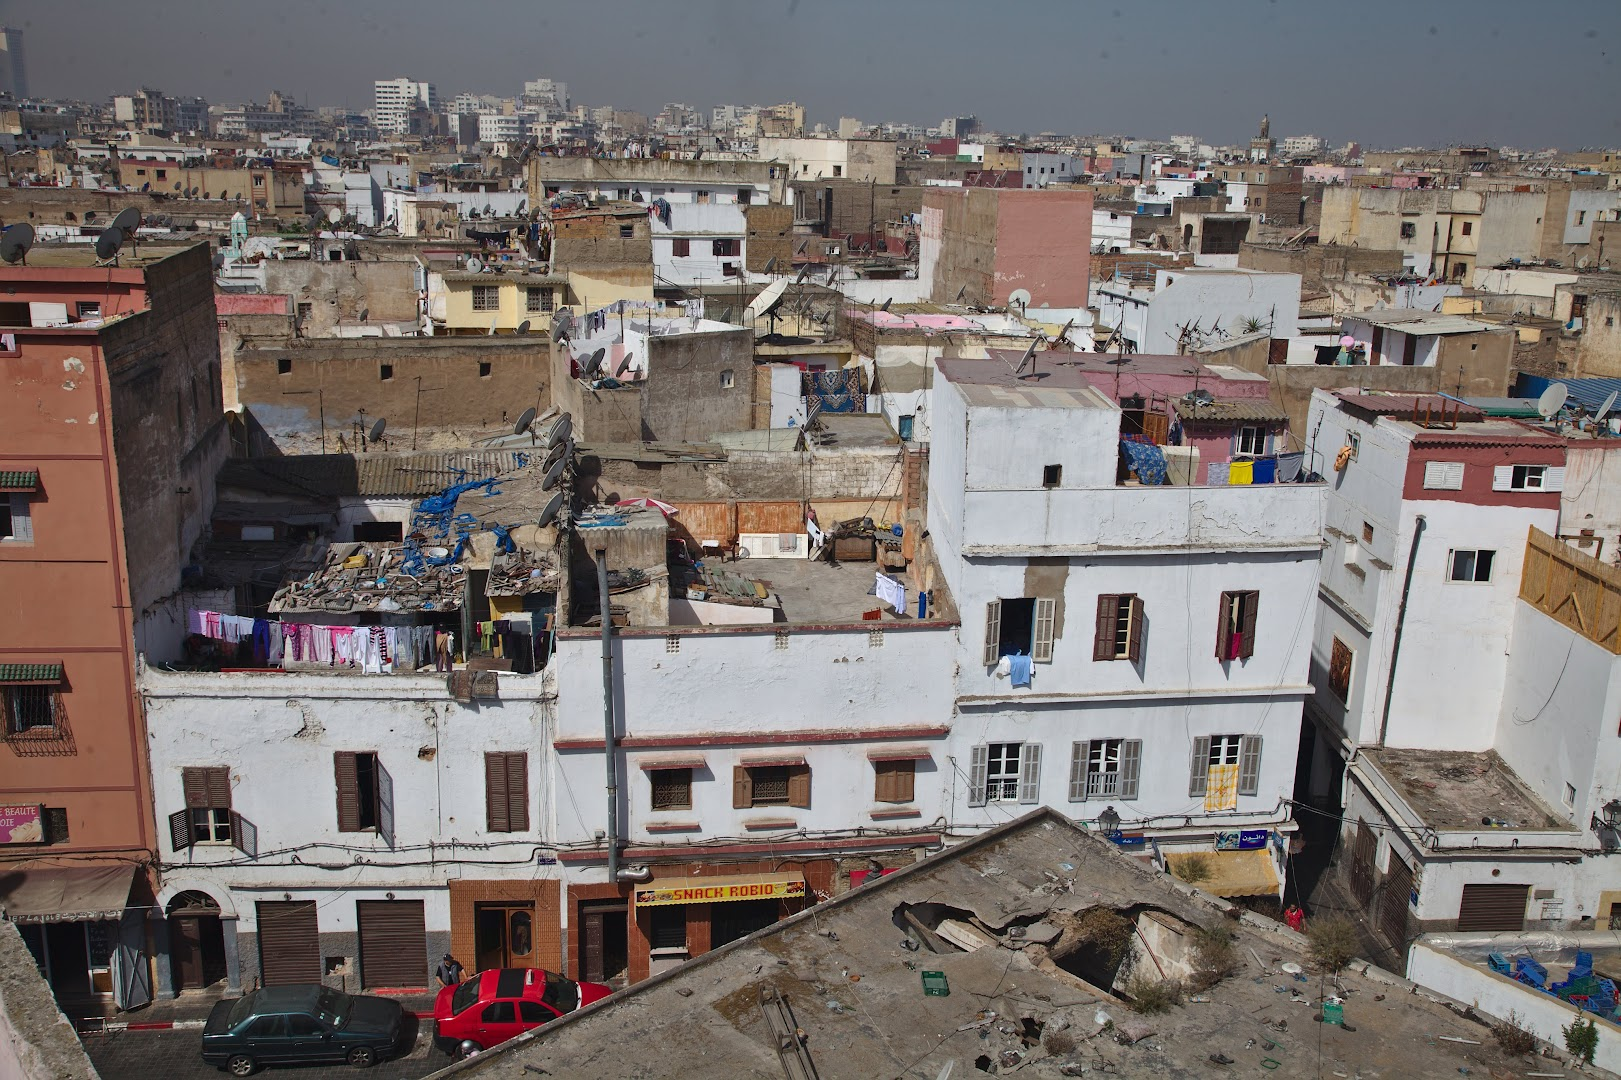 The famous Casablanca, one of the least pretty Moroccan cities